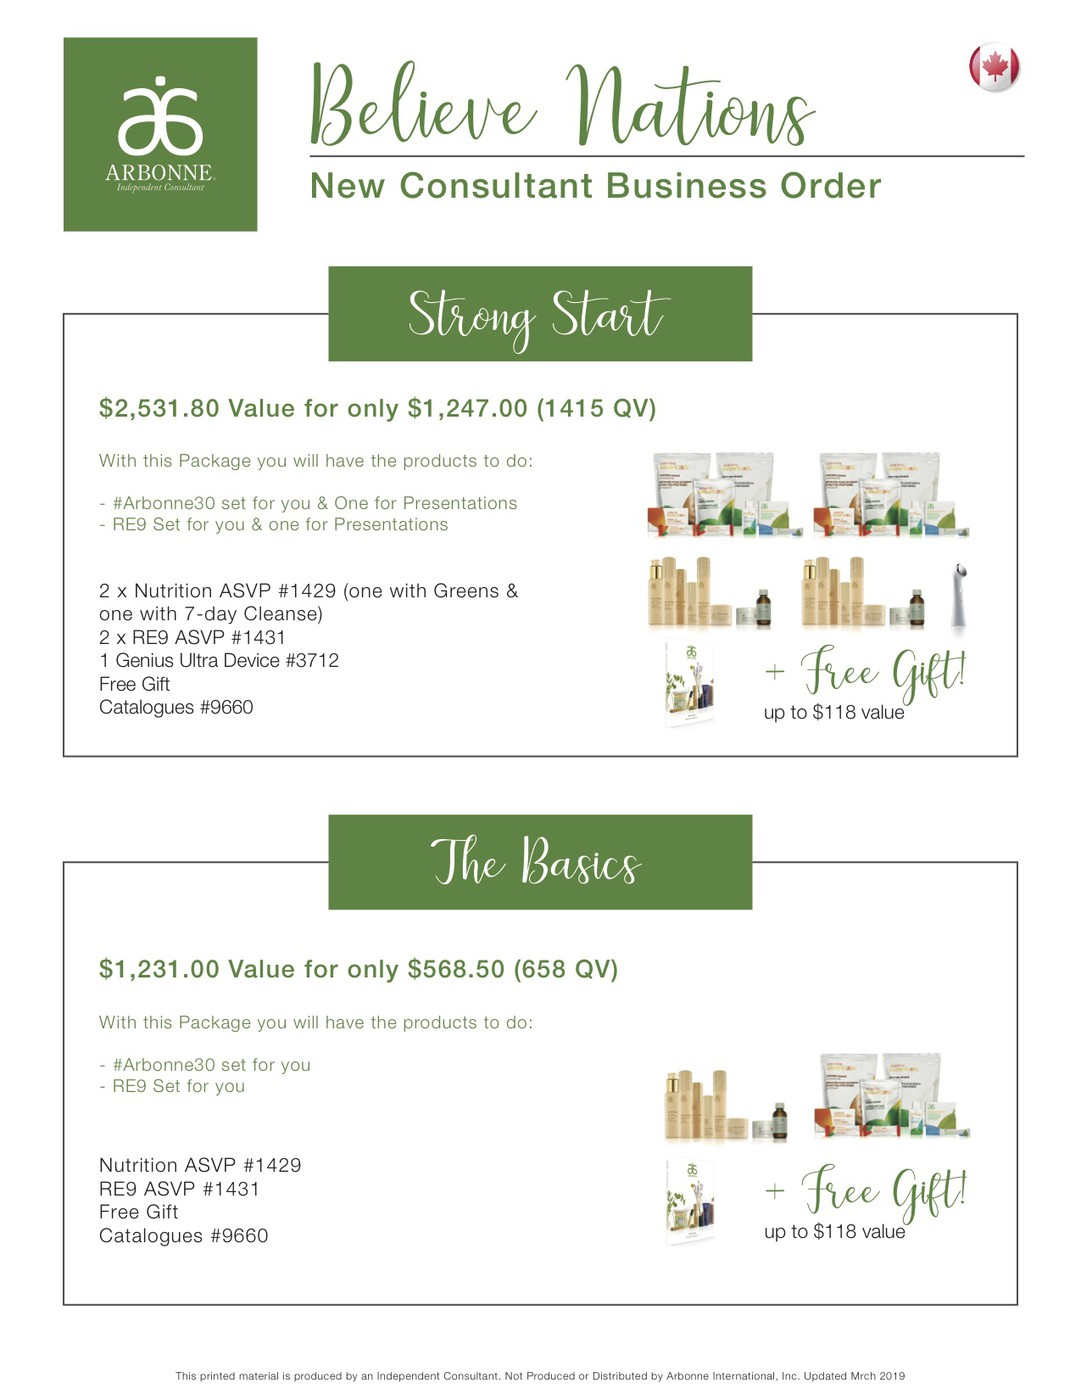 Getting Started with Arbonne | Smore Newsletters for Business